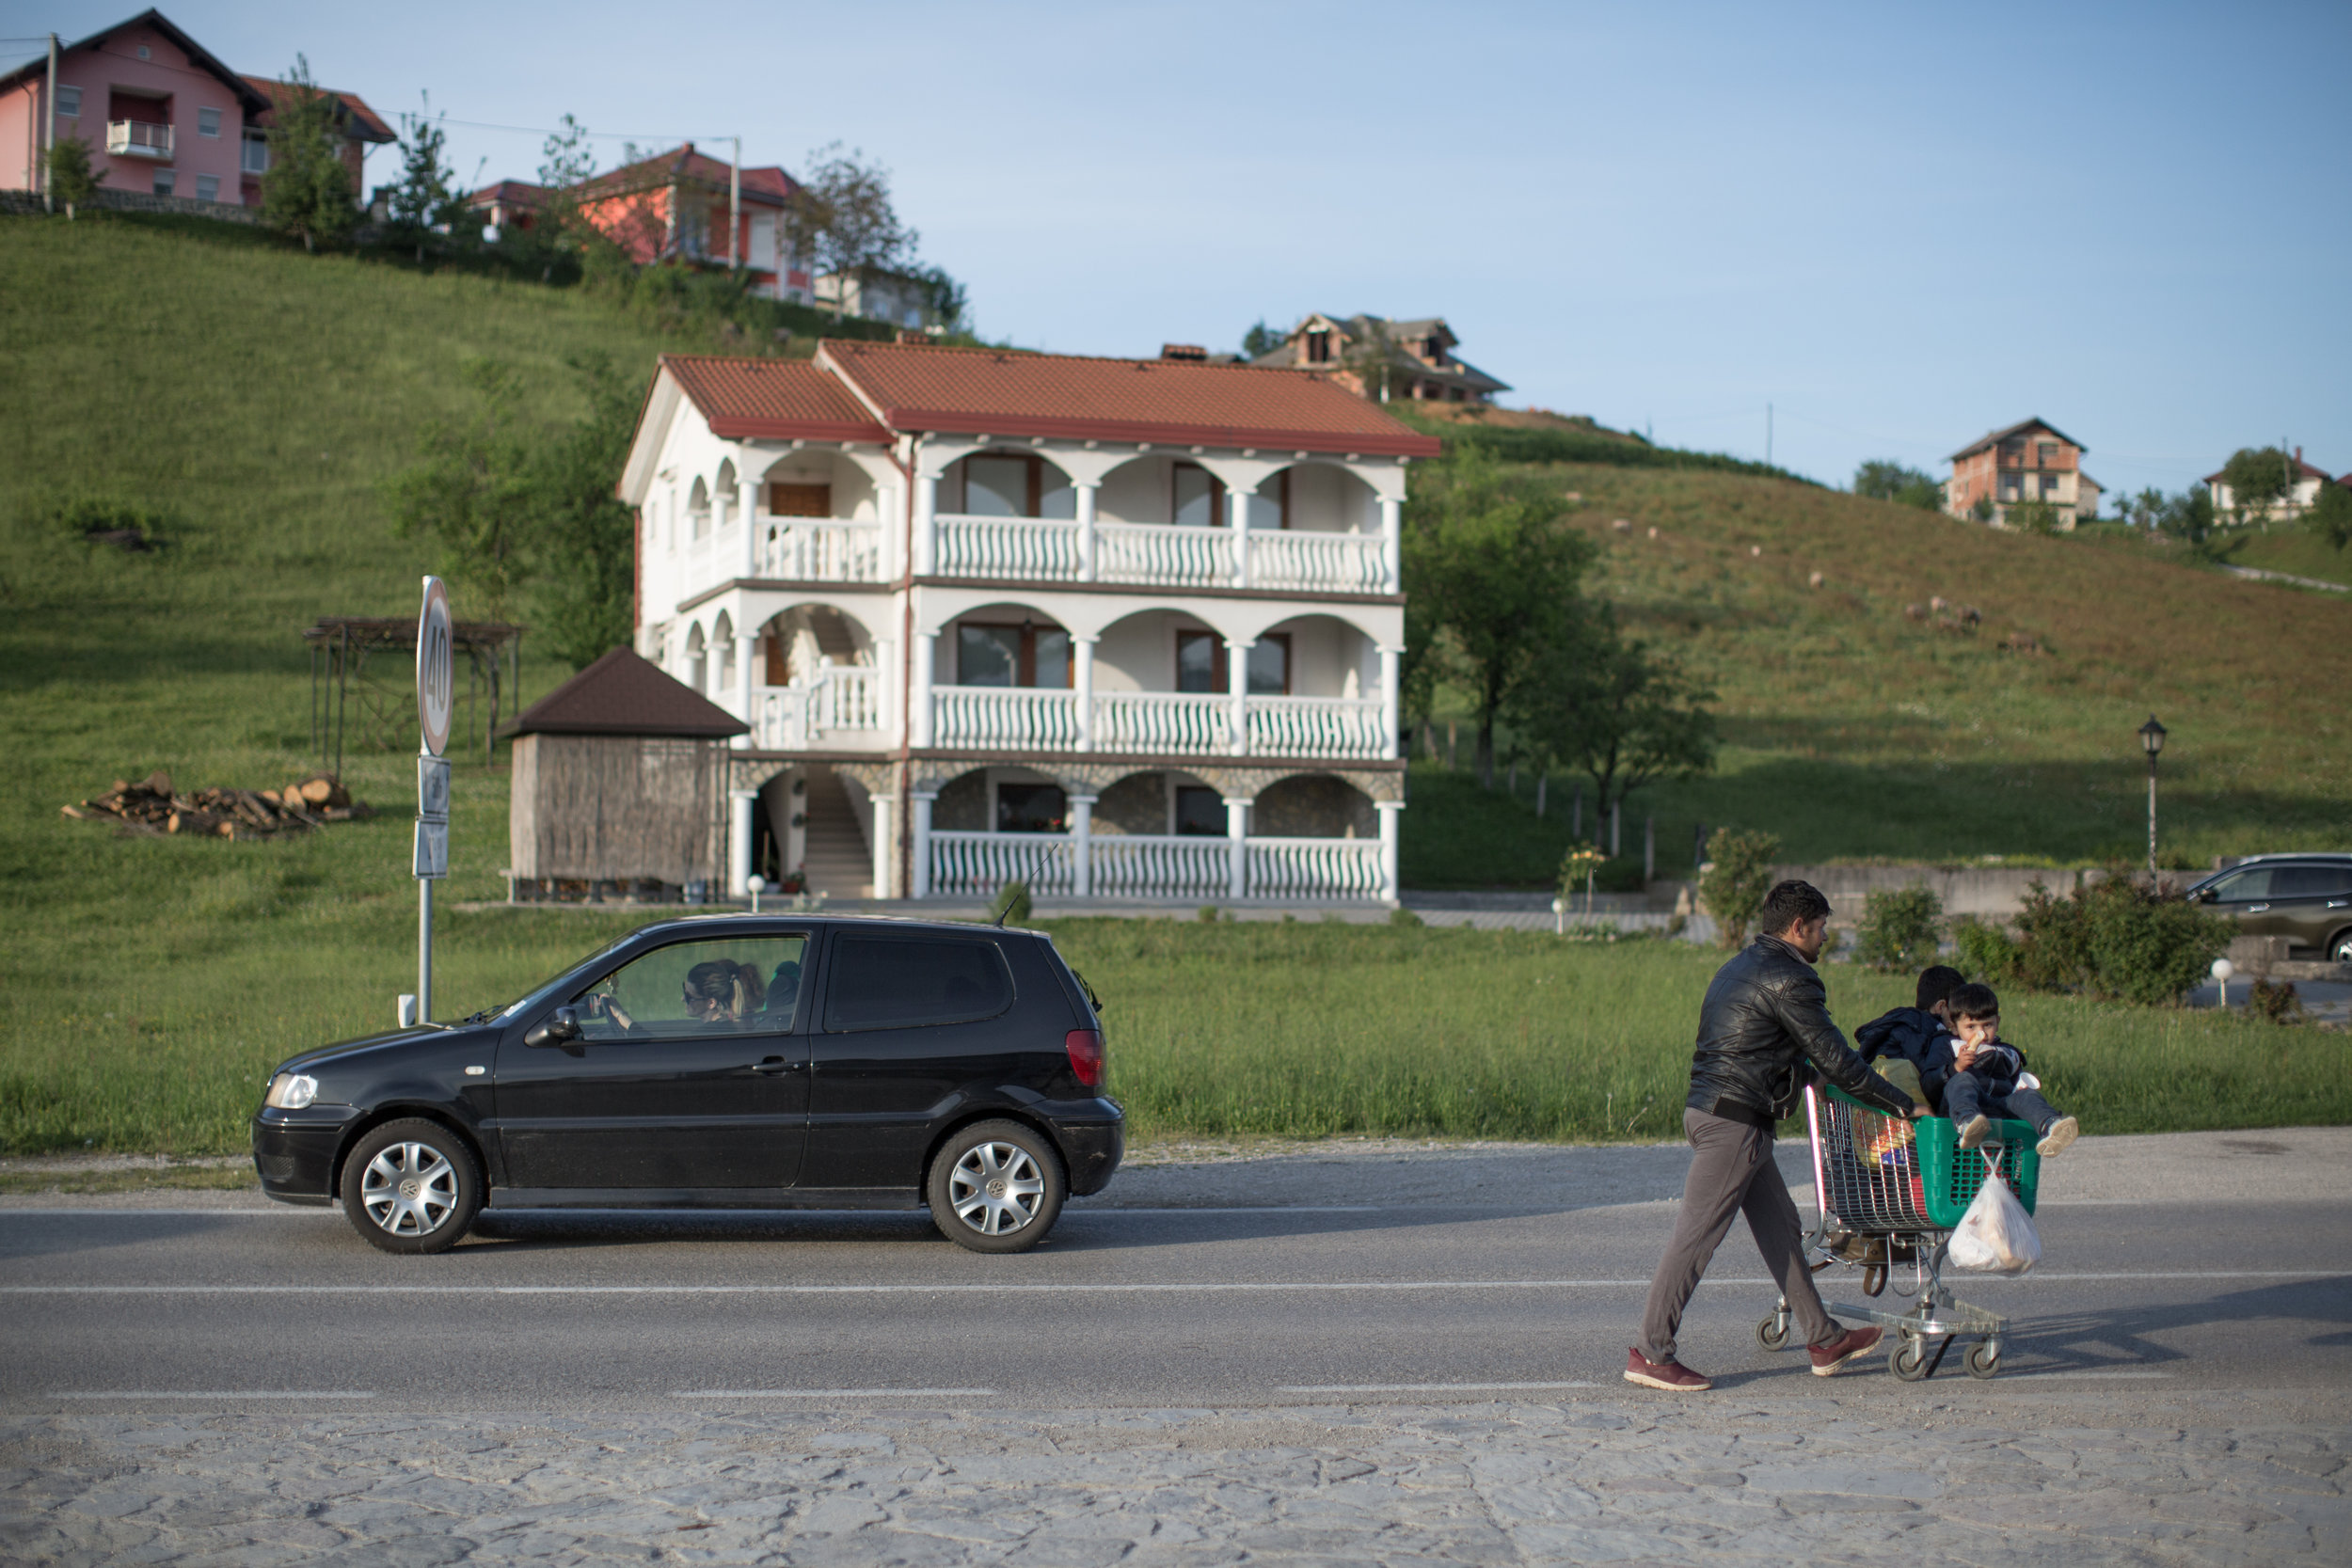 A family from Syria on their way to the migrant center Miral, Velika Kladuša, BiH.